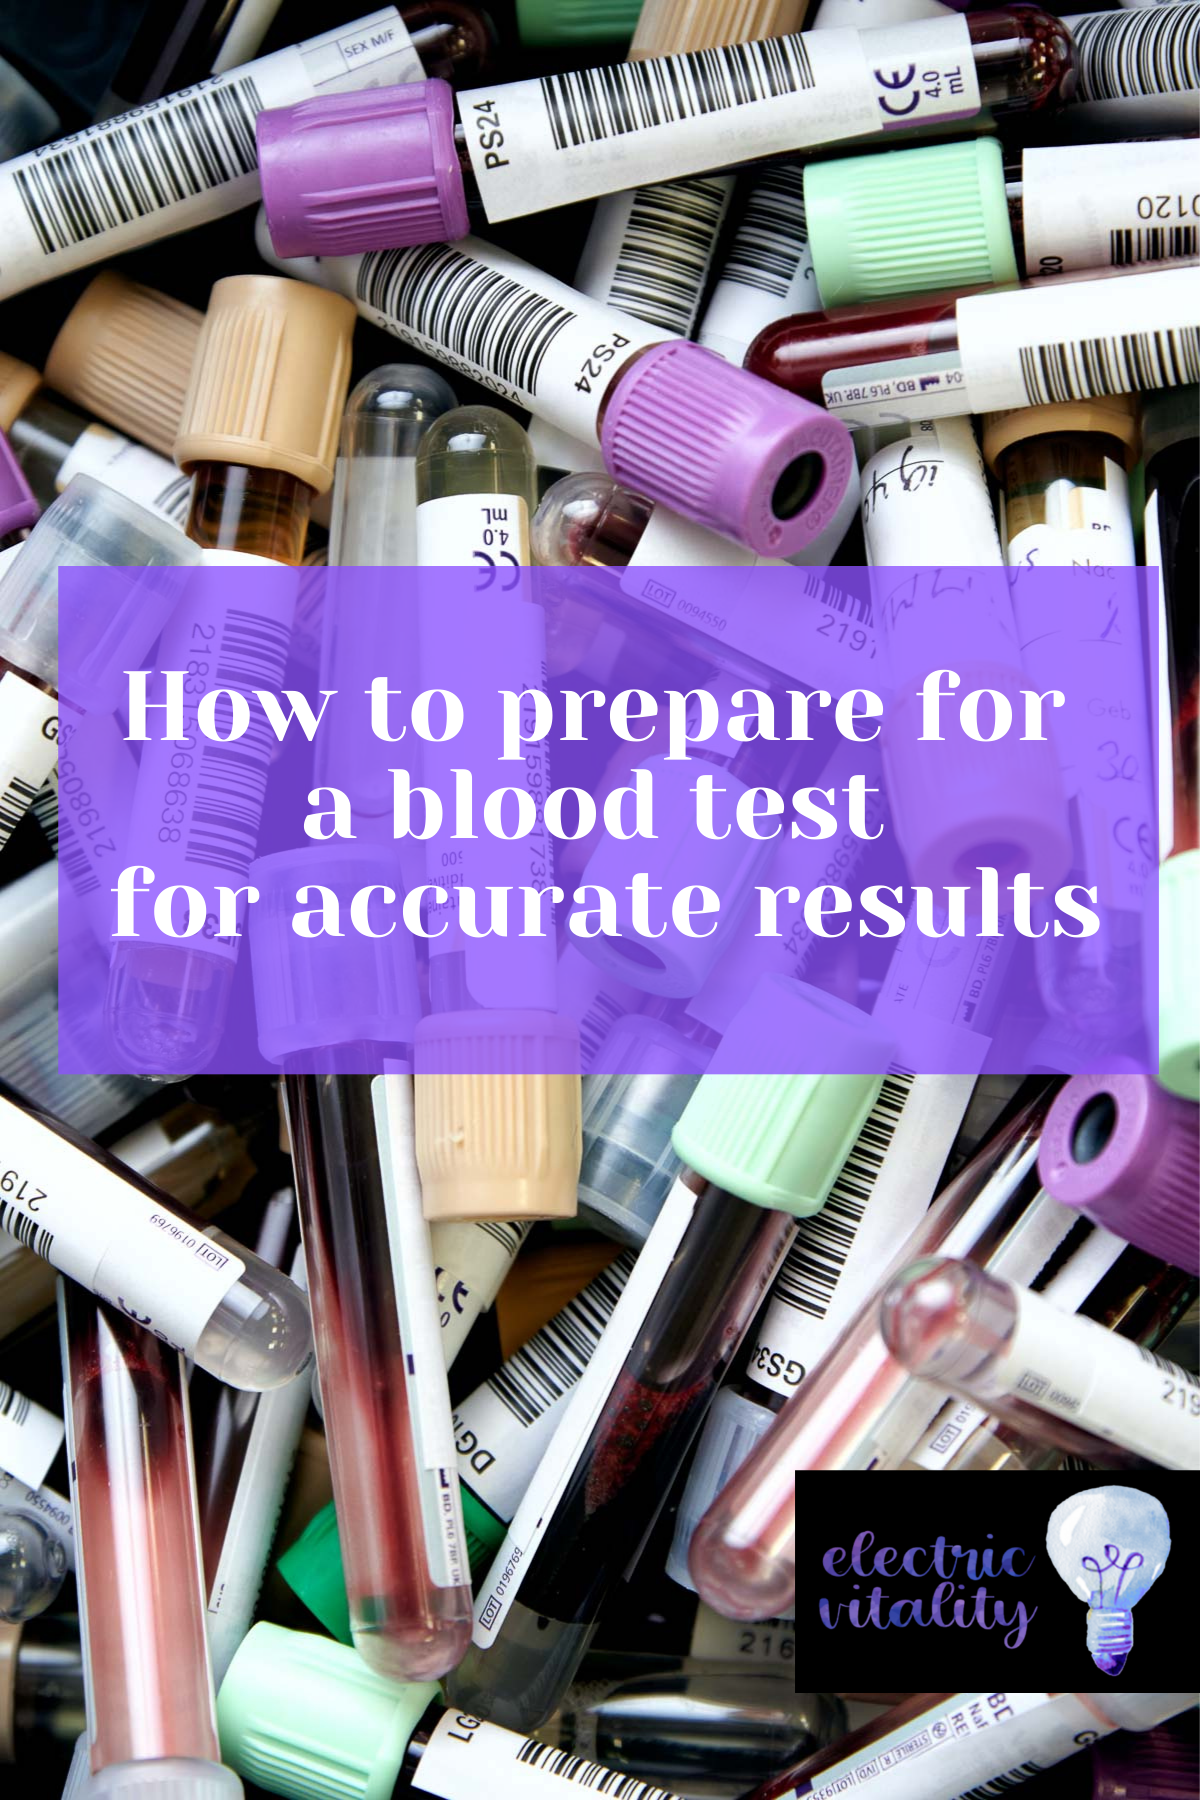 Image text: how to prepare for a blood test for accurate results